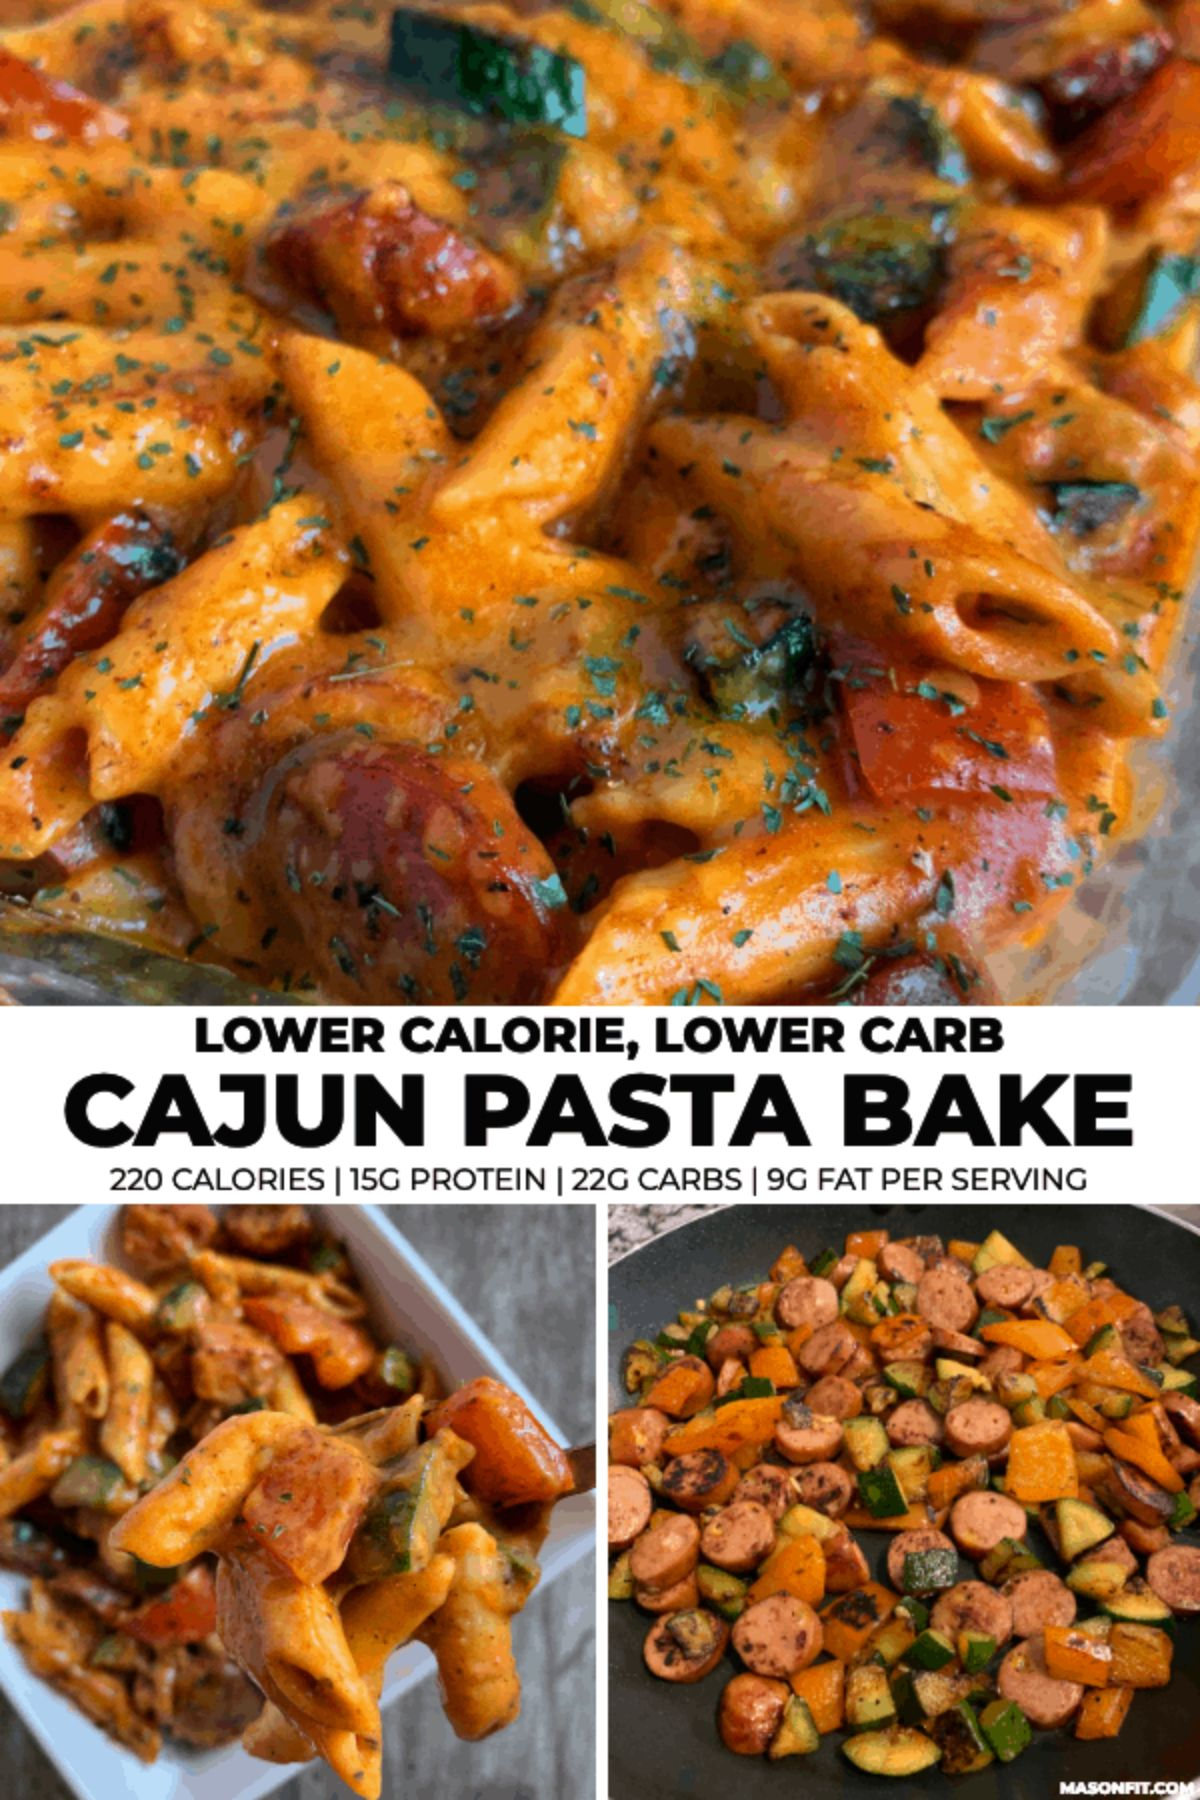 "The text reads ""Lower calorie, Lower carb Cajun pasta bake. 220 calories, 15g protein 22g carbs 9g fat per serving"" The phots are of penne covered in a creamy tomato sauce mixed with sliced sausage and herbs"